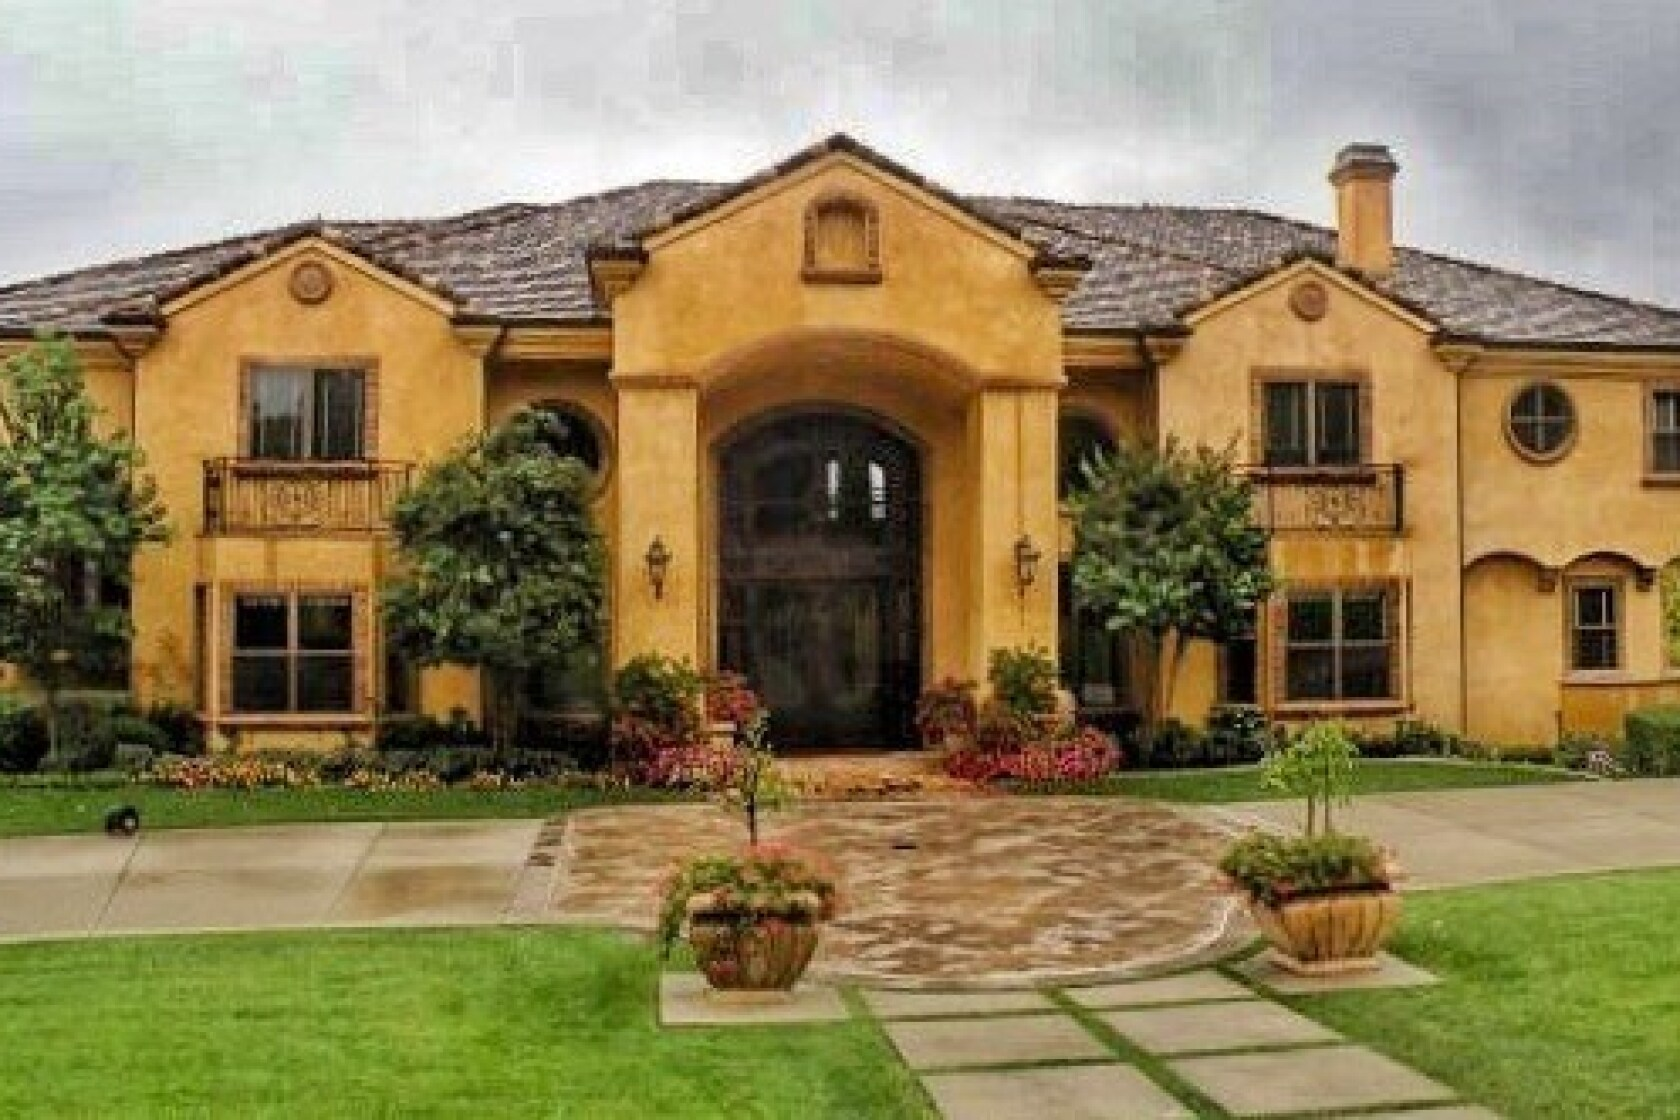 Lonzo Ball Linked Llc Buys A Baller Mansion In Chino Hills For 5 2